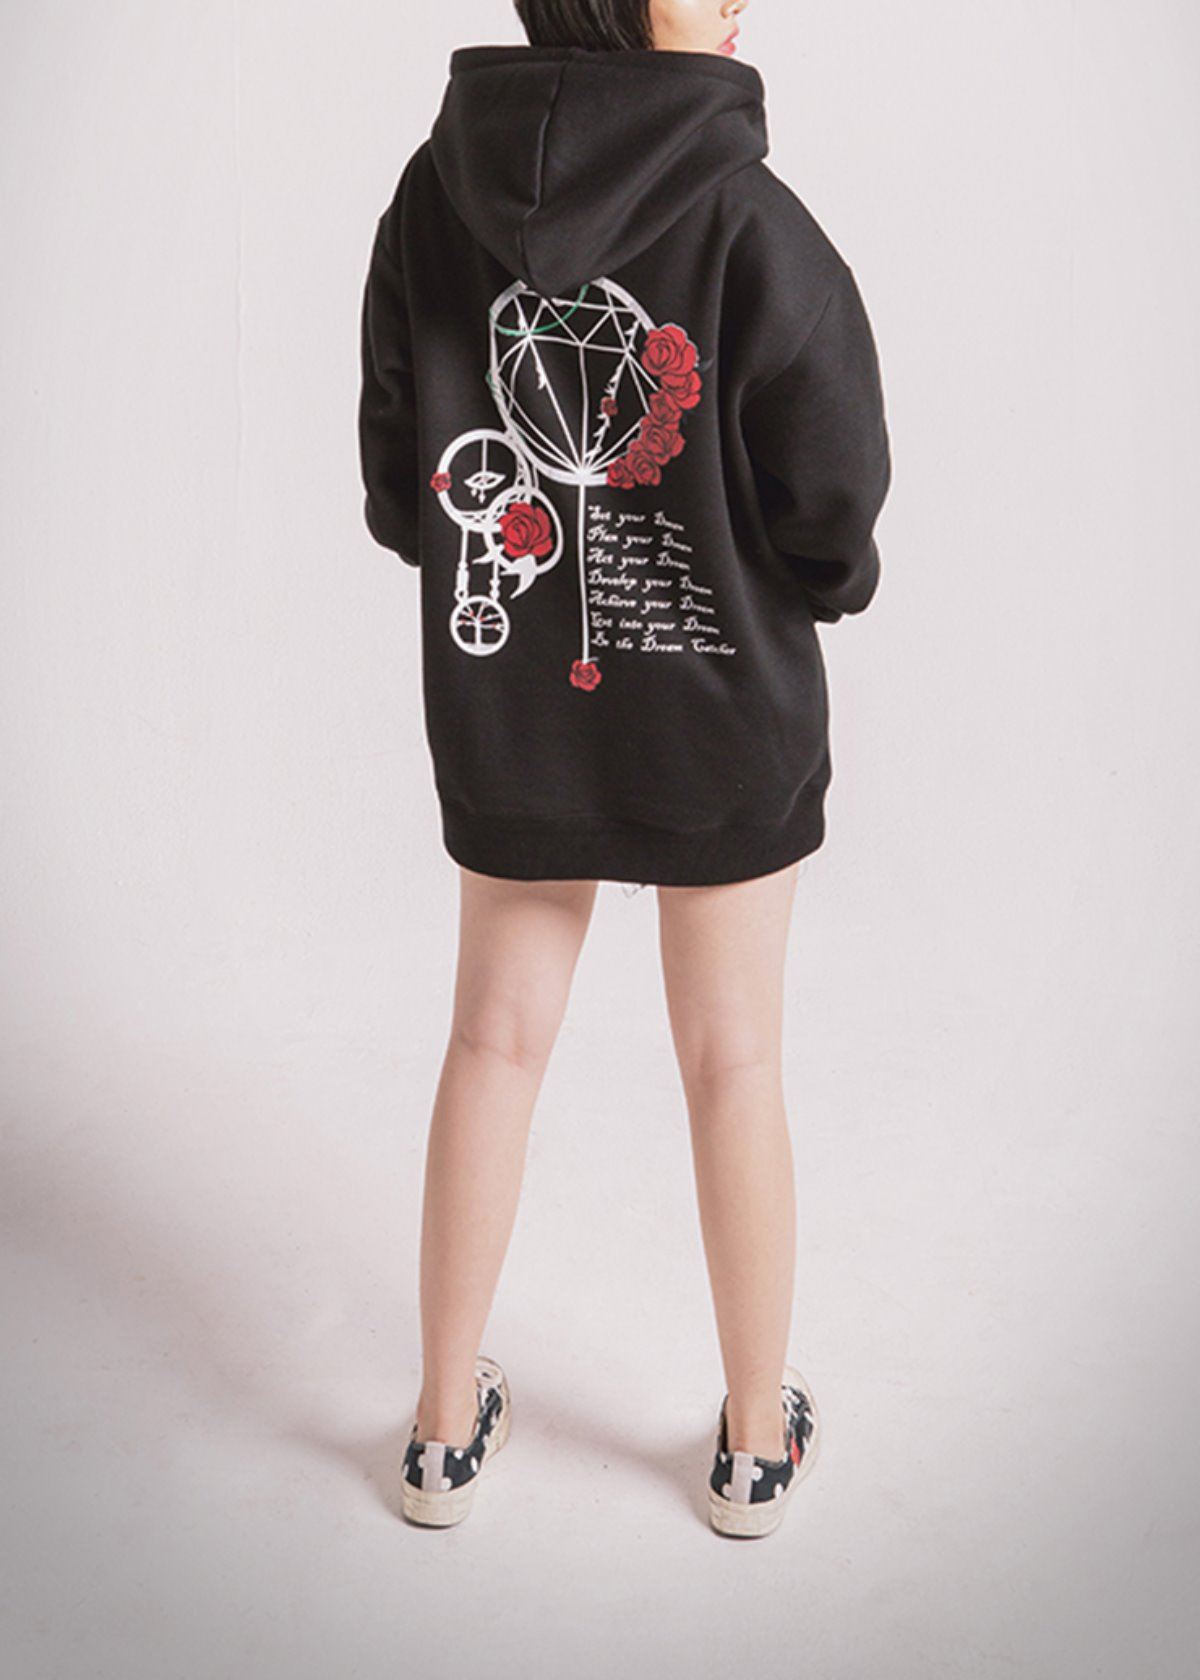 Dream Catcher Hoodie